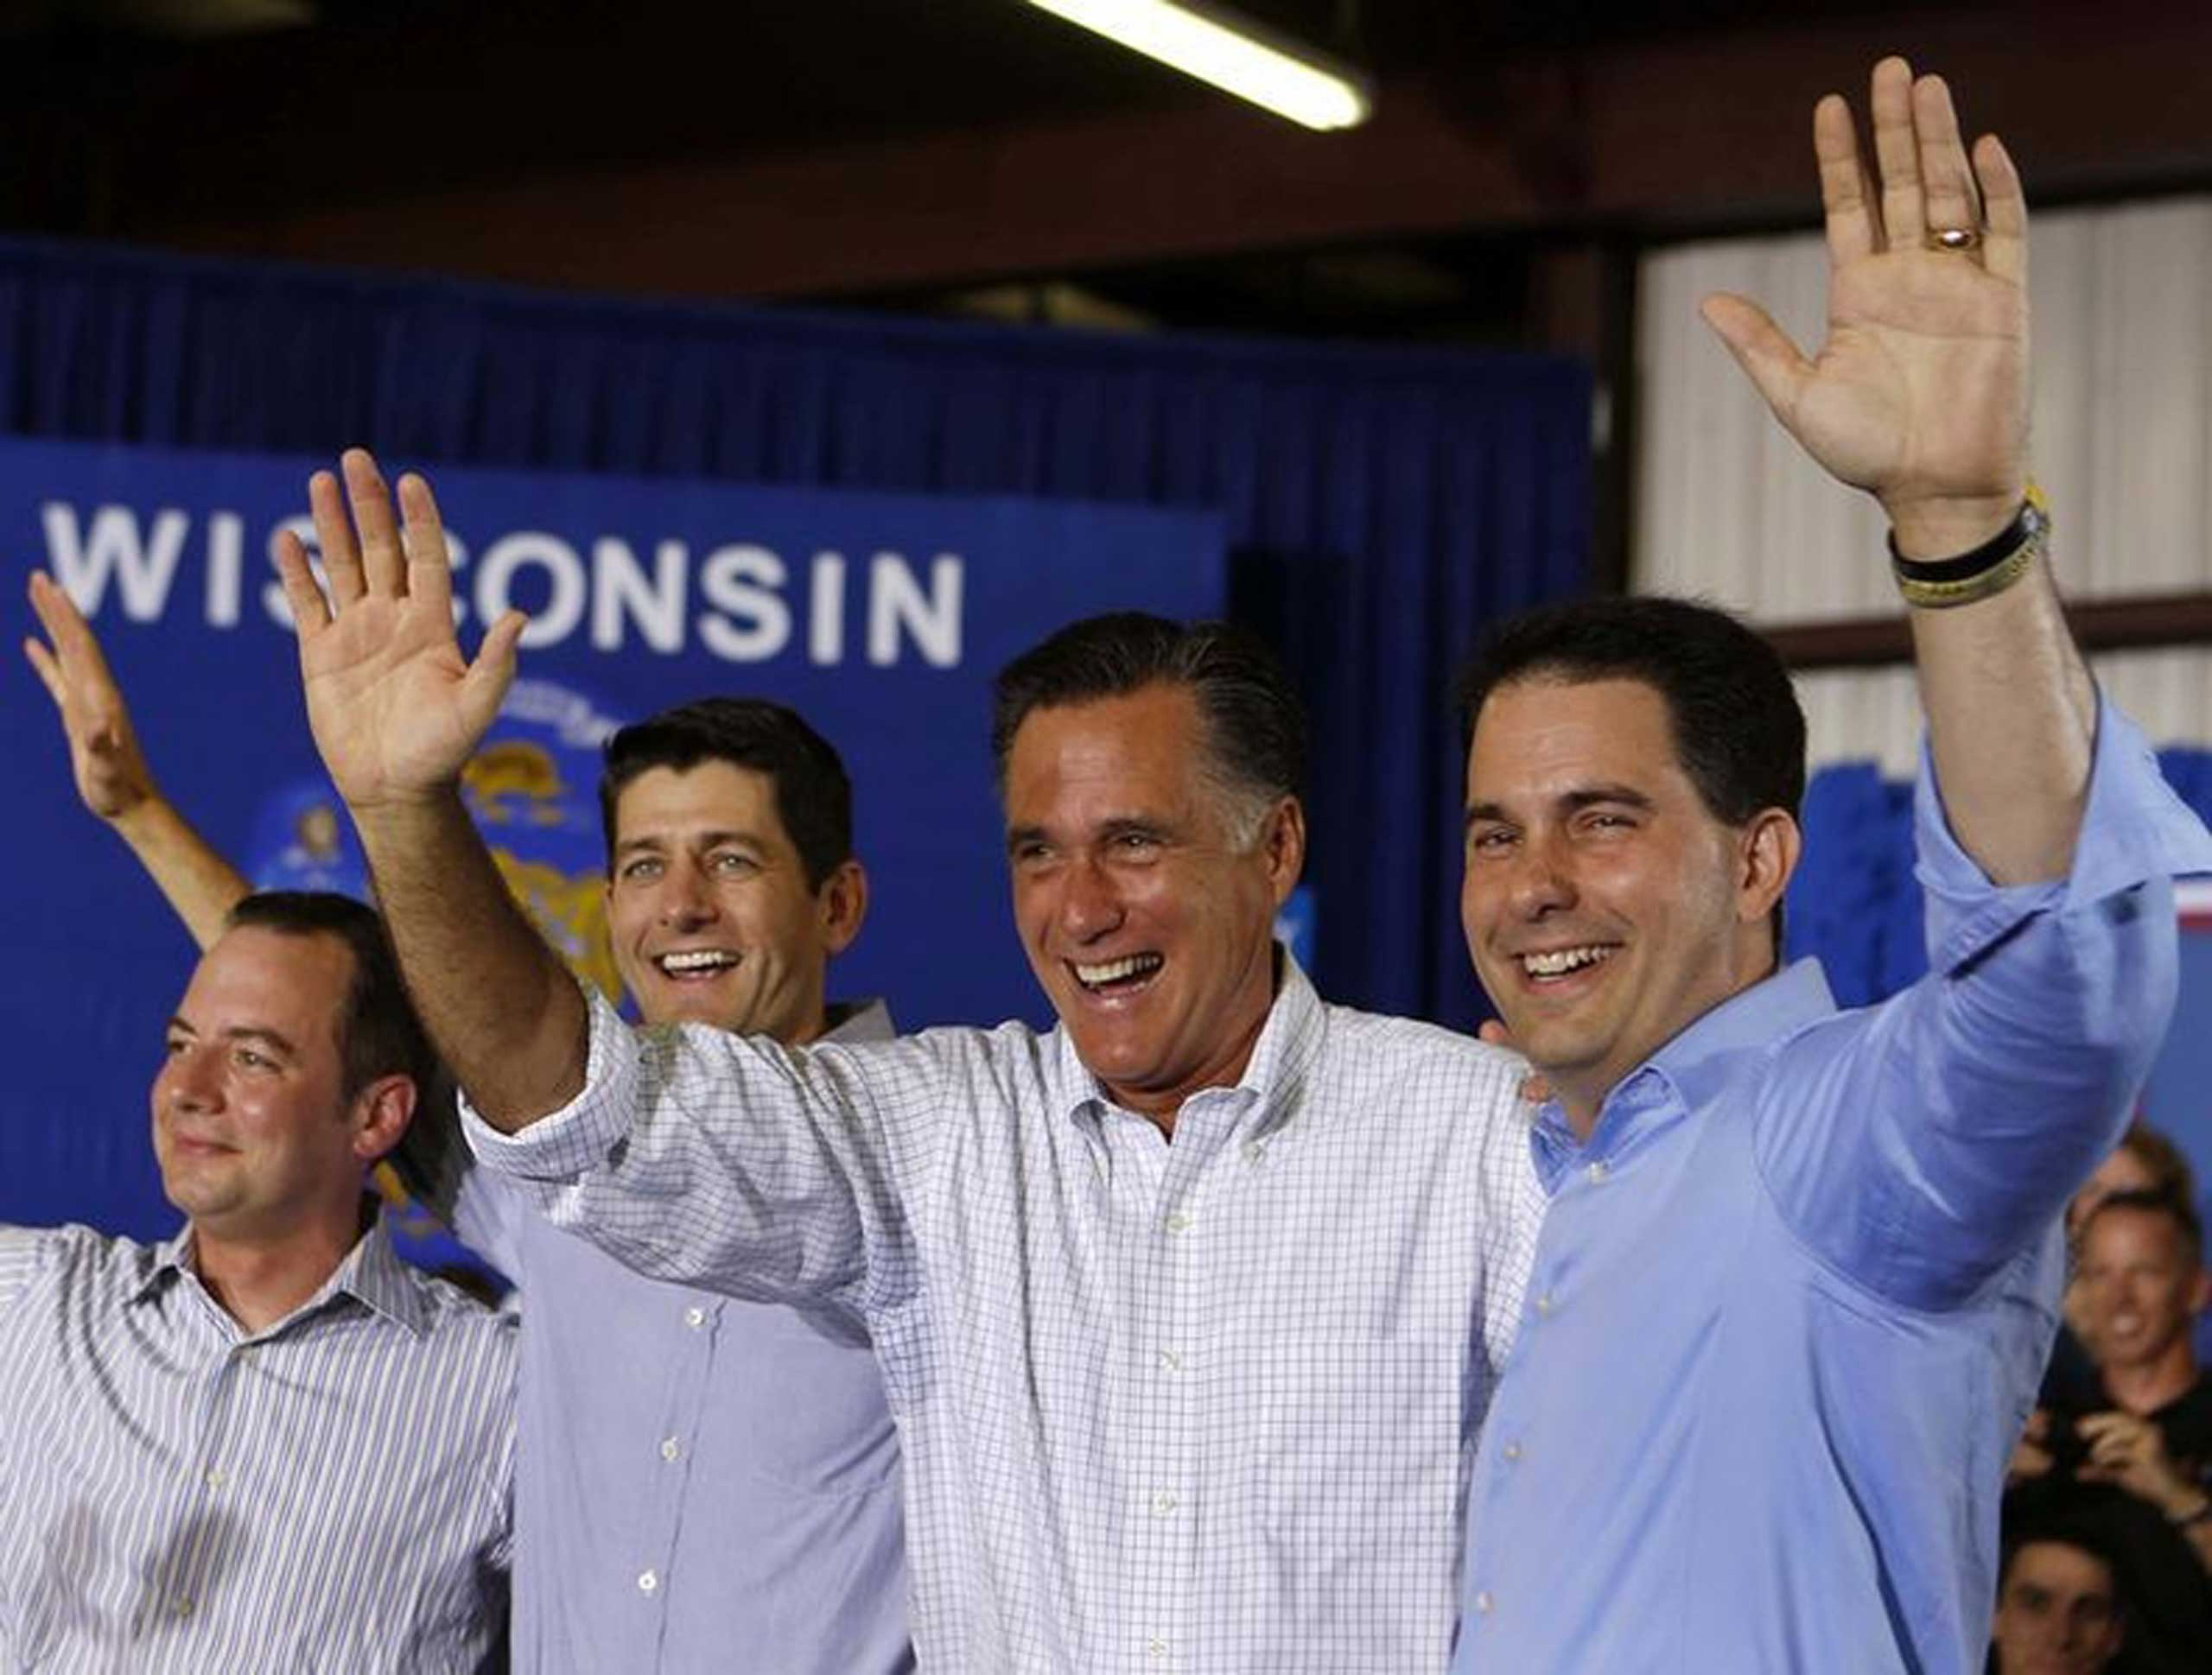 U.S. Republican Presidential candidate Mitt Romney (2nd R) waves next to Governor Scott Walker (R), Representative Paul Ryan (2nd L), and RNC Chairman Reince Priebus (L) before speaking to a crowd at Monterey Mills in Janesville, Wis., June 18, 2012.